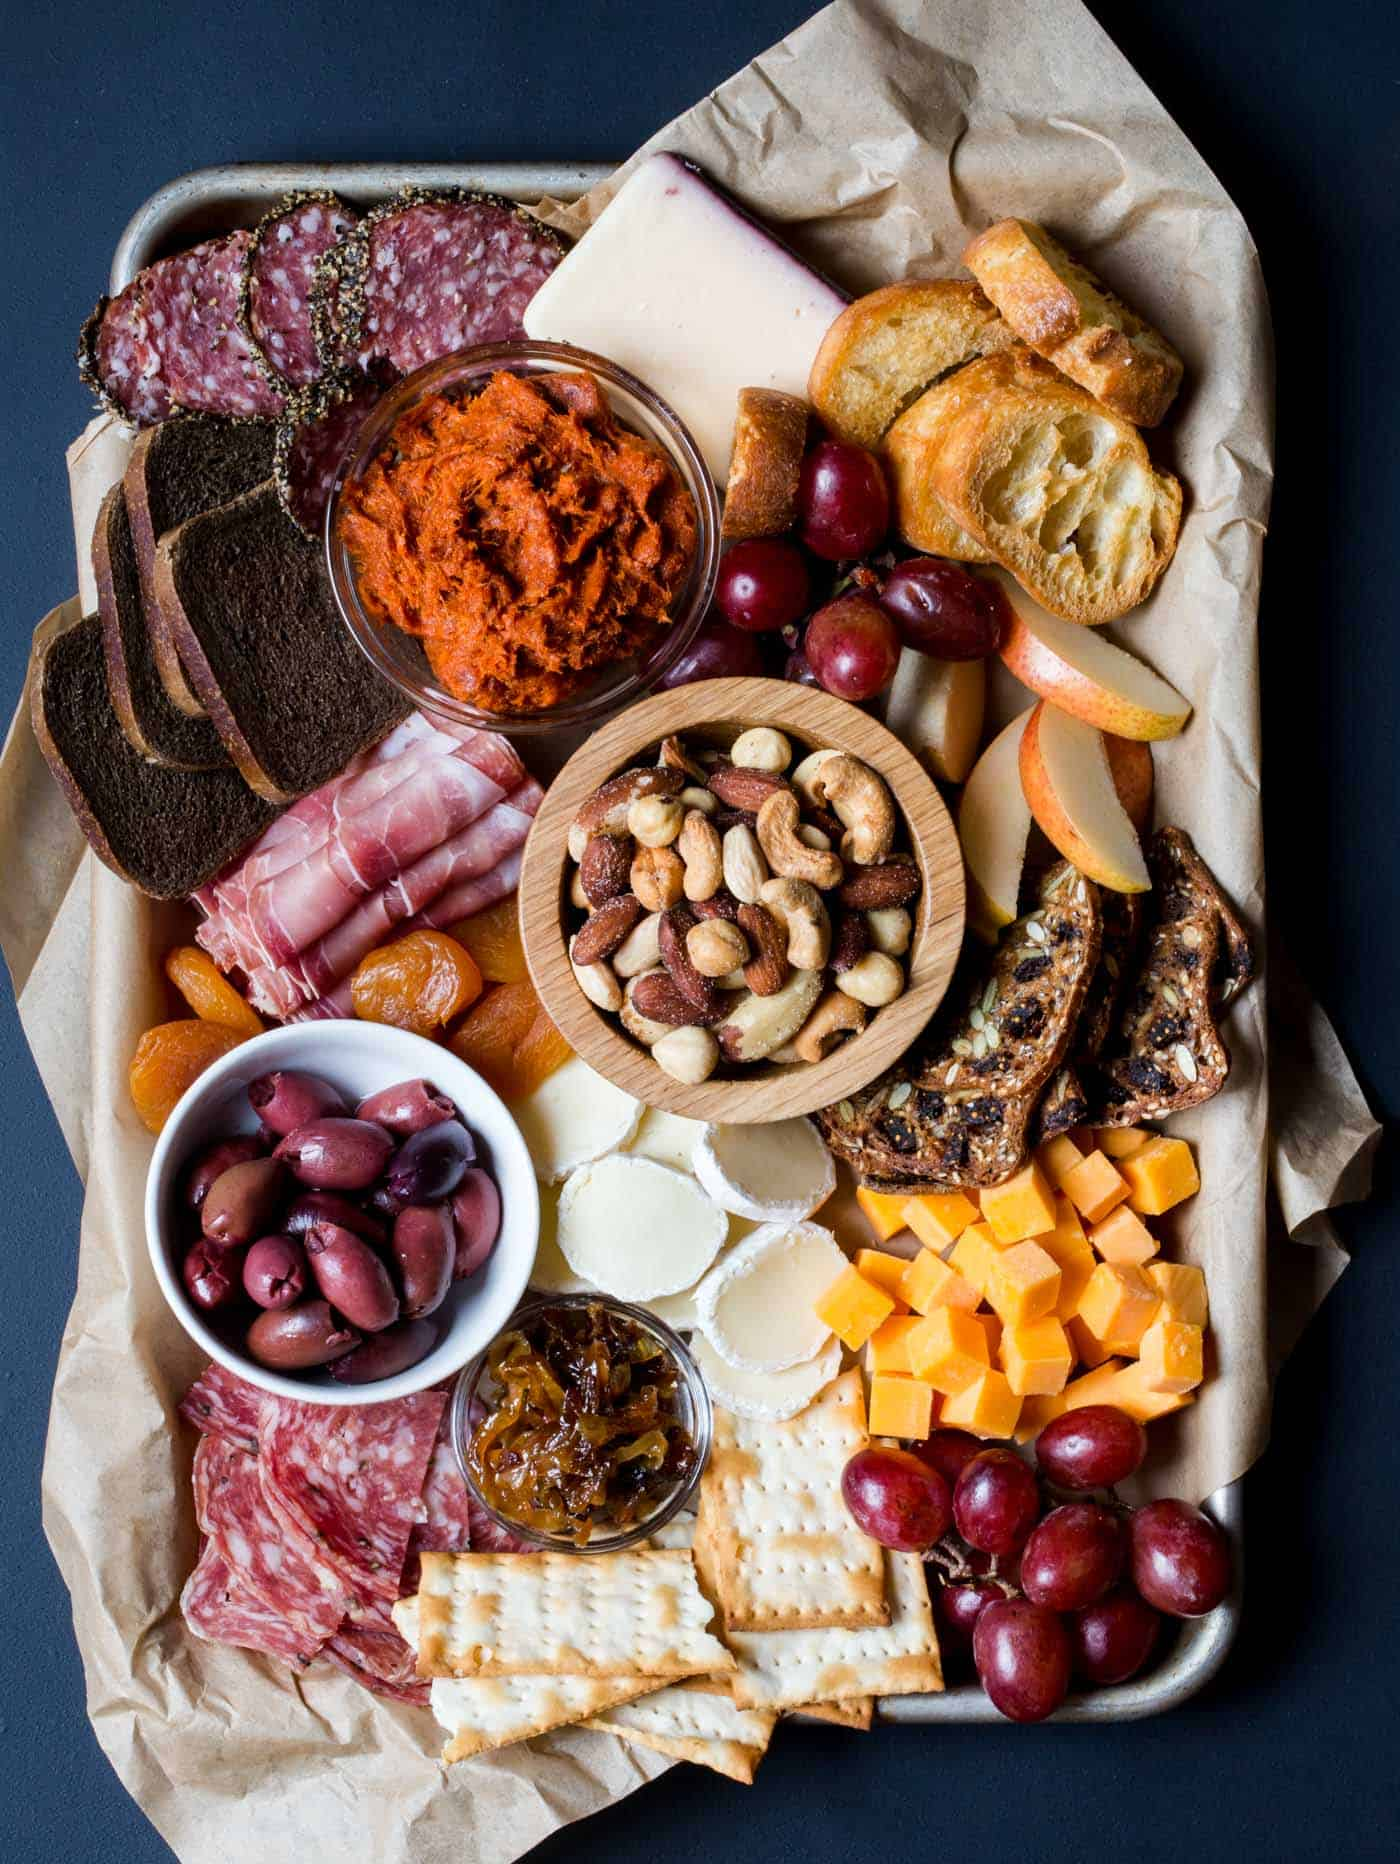 meat and cheese tray with olives, grapes, crostini and apples.